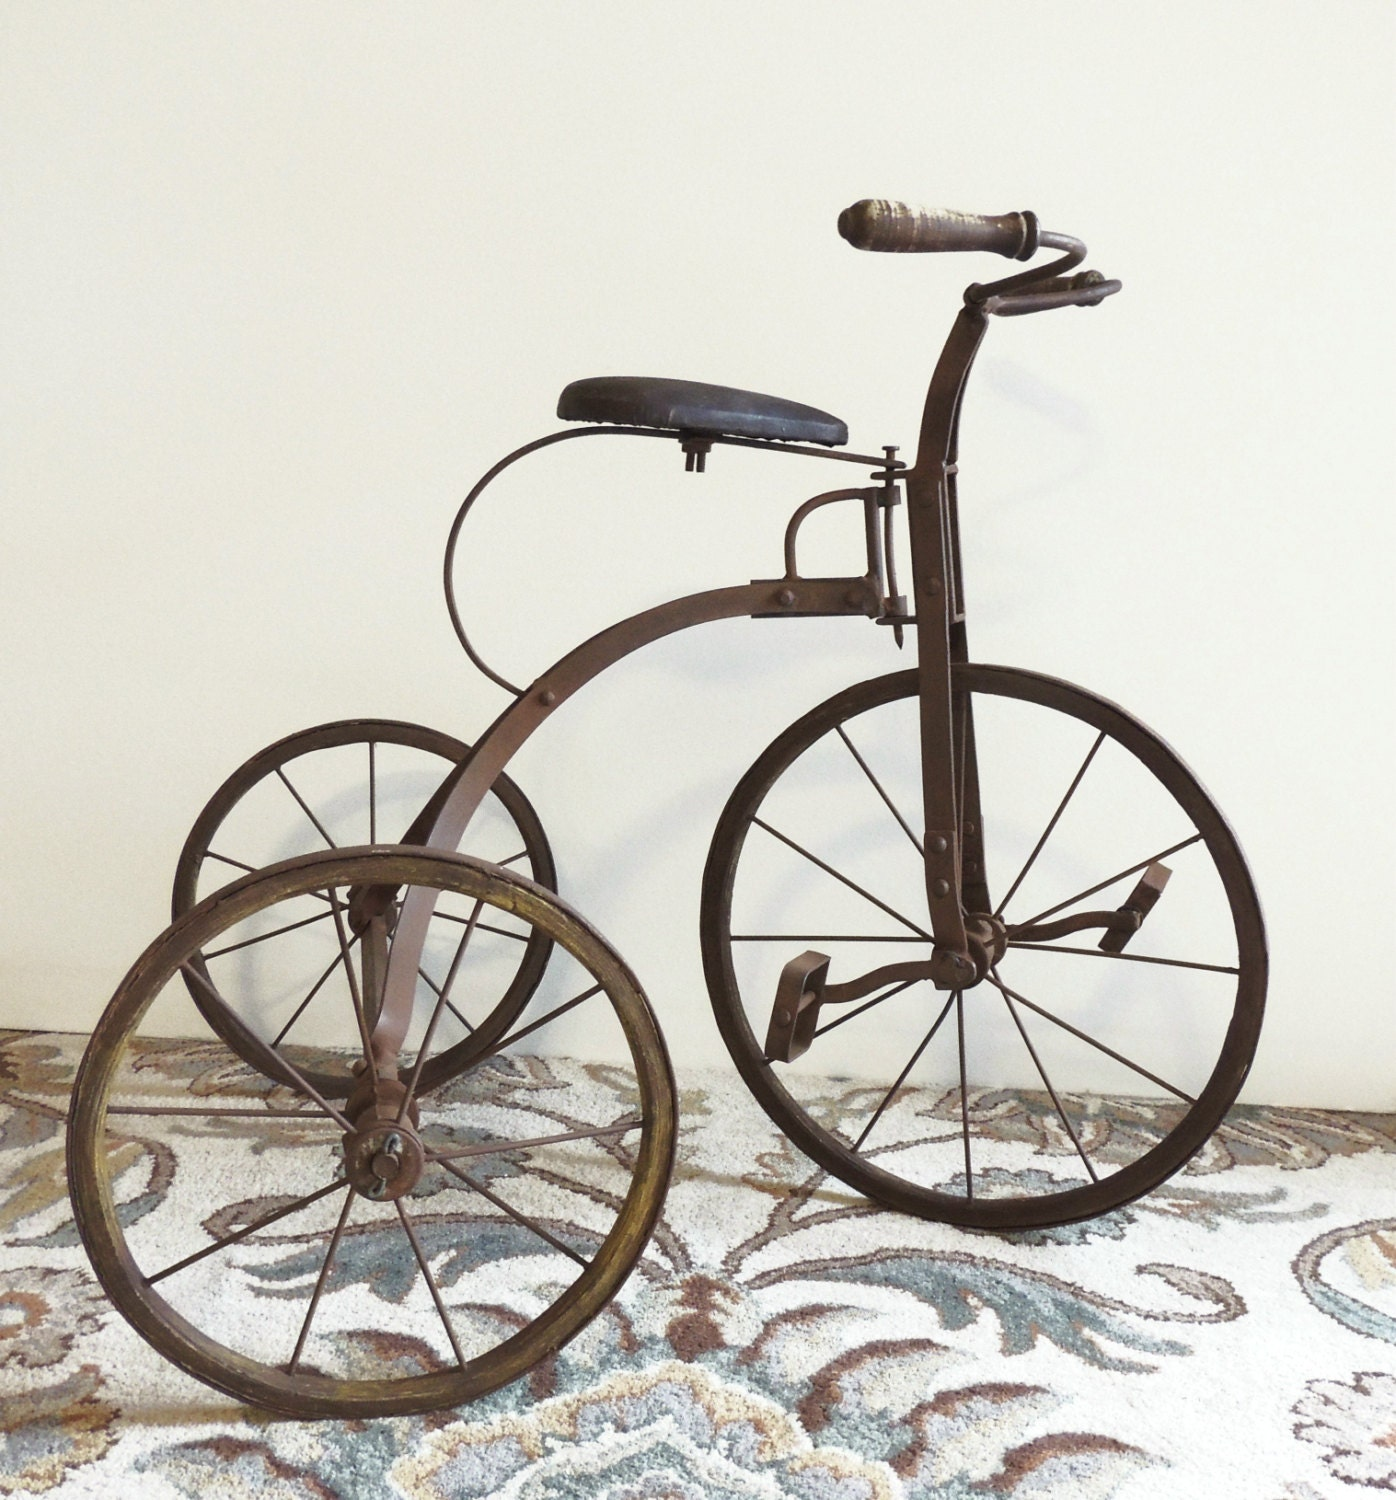 Vintage Tricycle Wheels : Reserved for lfuhrman antique tricycle old by